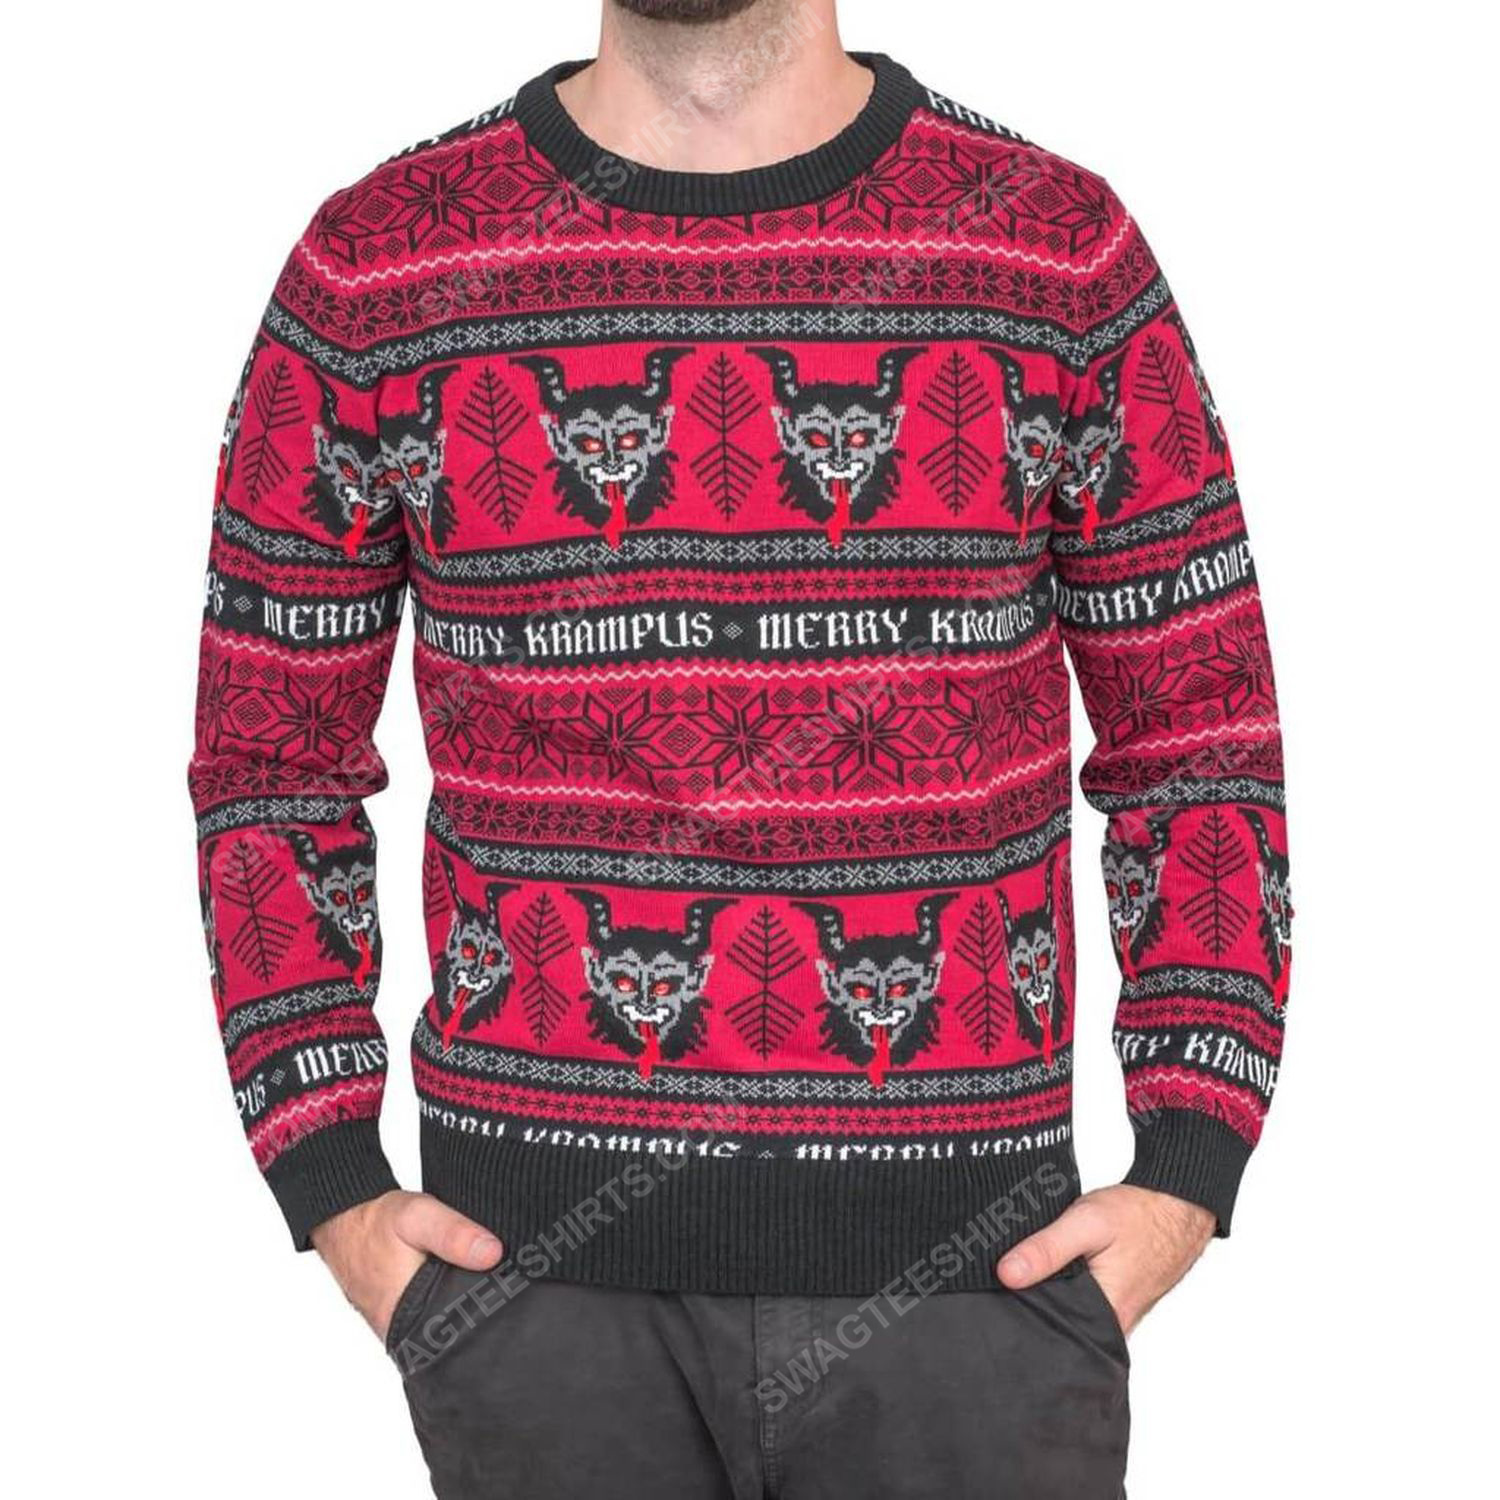 Christmas time merry krampus full print ugly christmas sweater 3